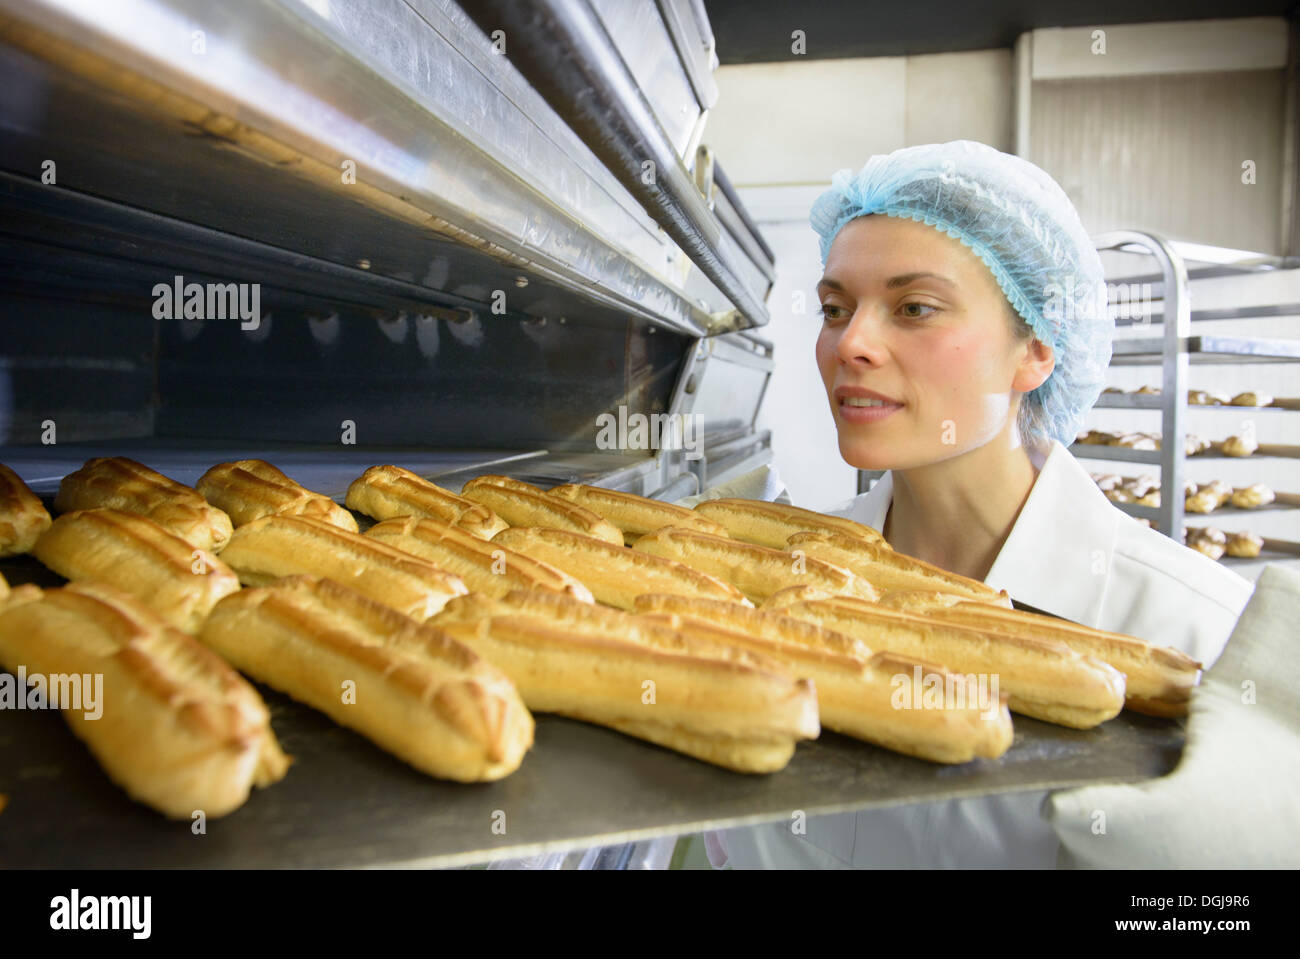 Baker removing tray of baked pastries from oven in bakery - Stock Image